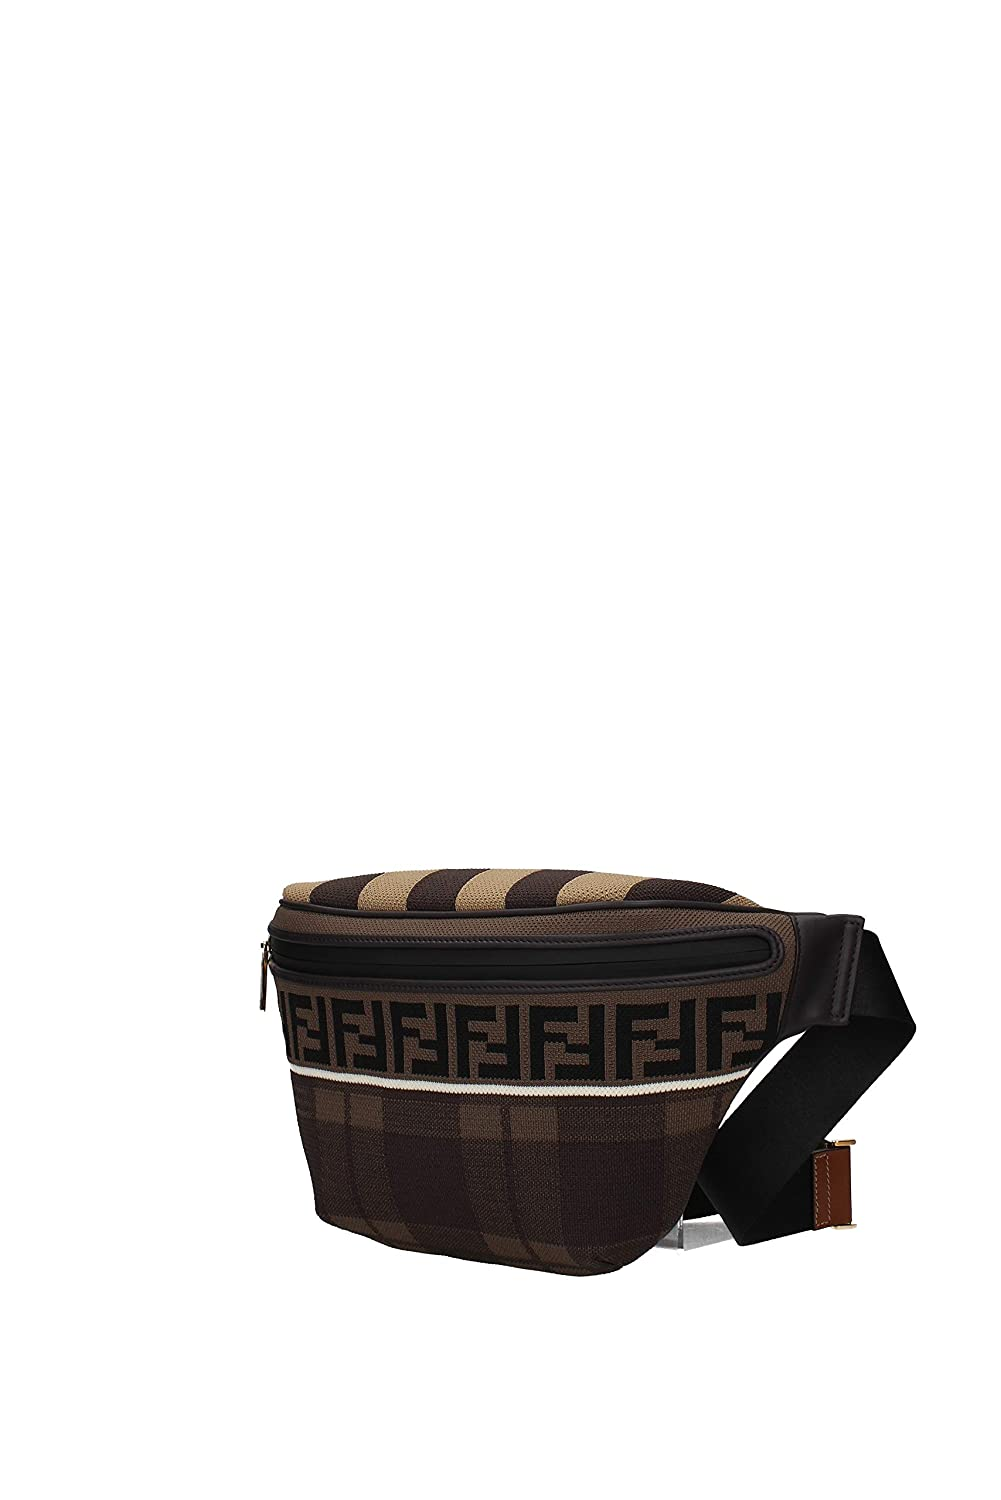 eca64af820cf Amazon.com  Fendi Brown Belt Bag Fanny Pack with Leather Trim and Knit  Fabric with Fendi logo 7VA434  Shoes